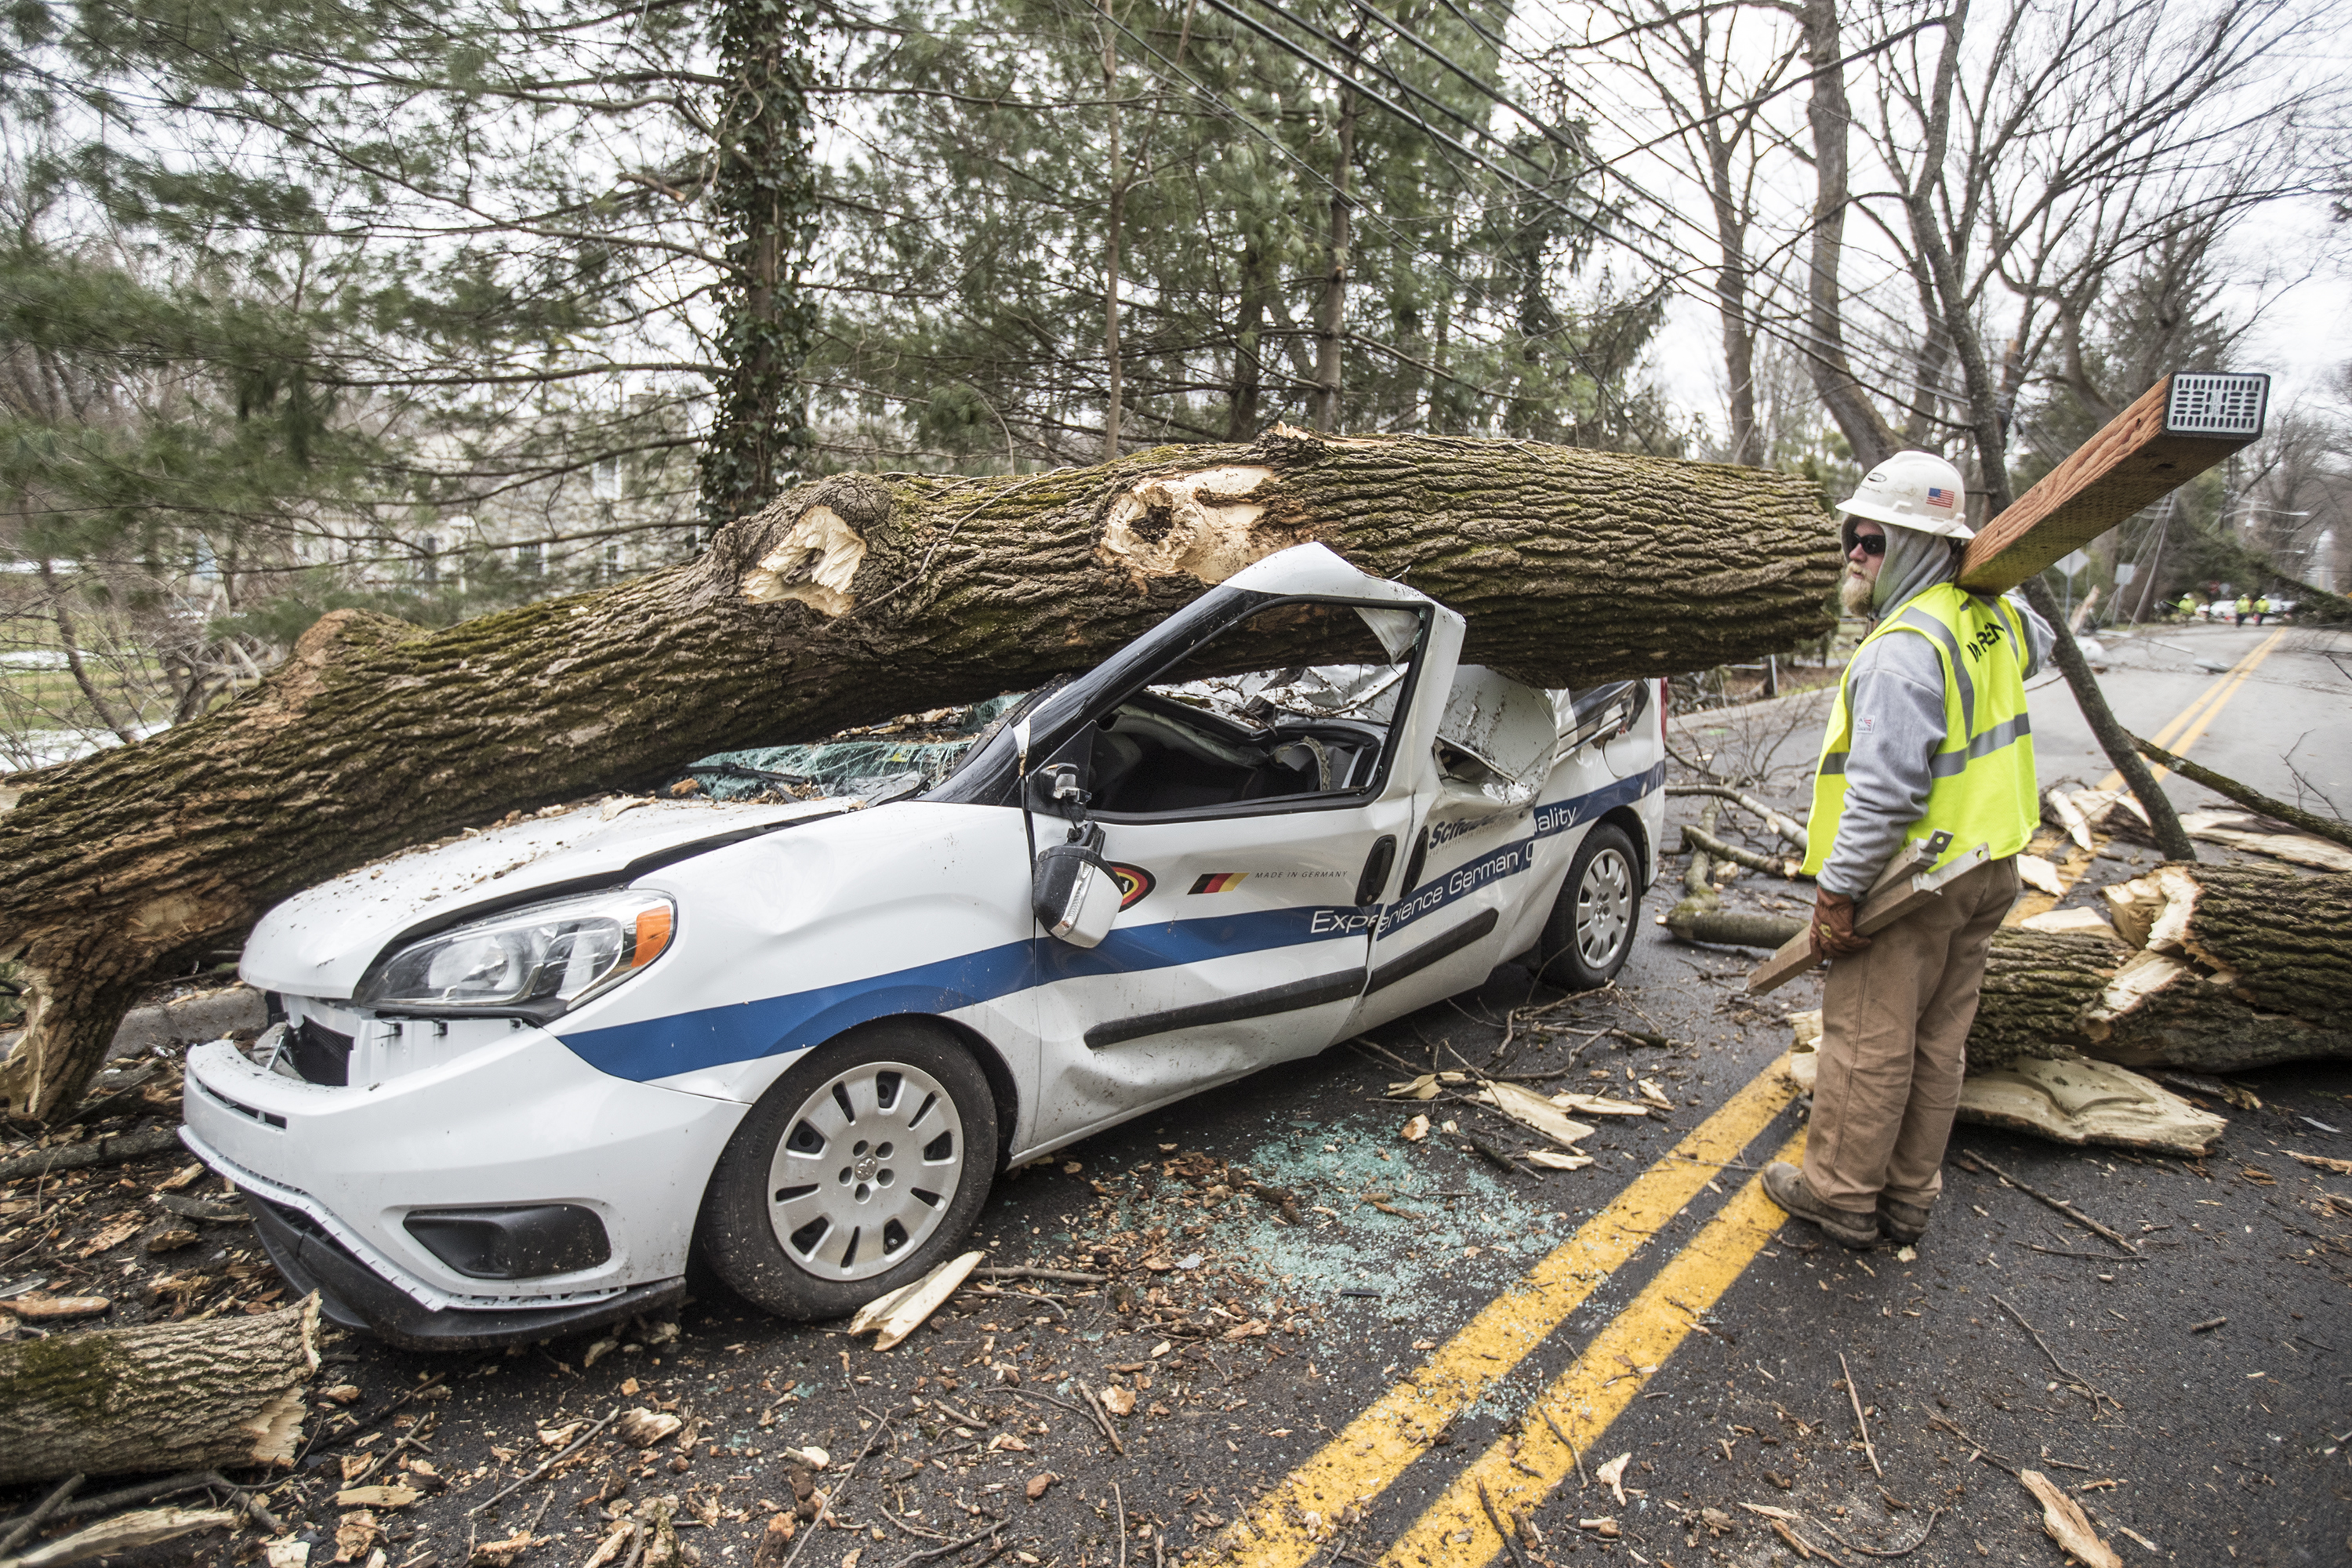 A car on Old Gulph Road in Bryn Mawr that was no match for what fell on it compliments of Friday´s nor´easter. MICHAEL BRYANT / Staff Photographer